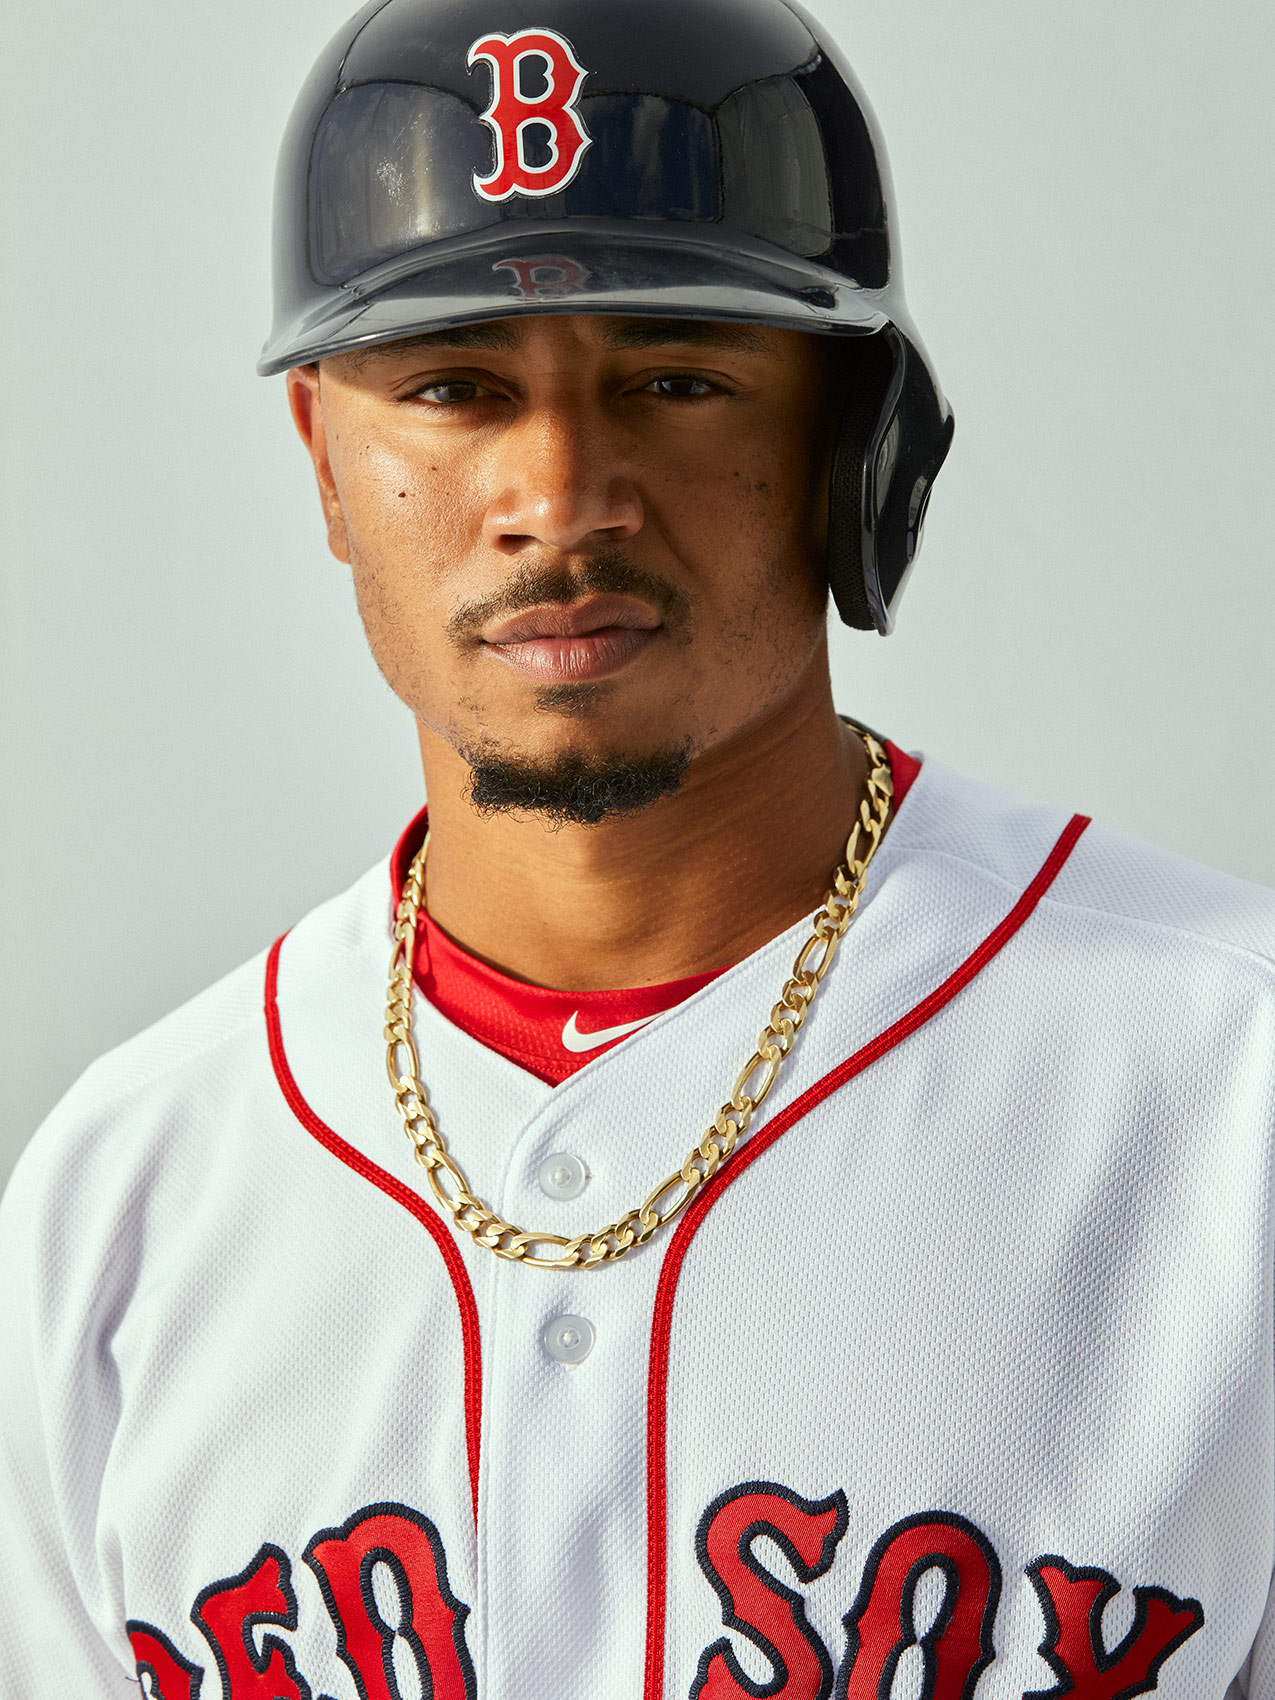 20170324_mookie-betts_33008-web